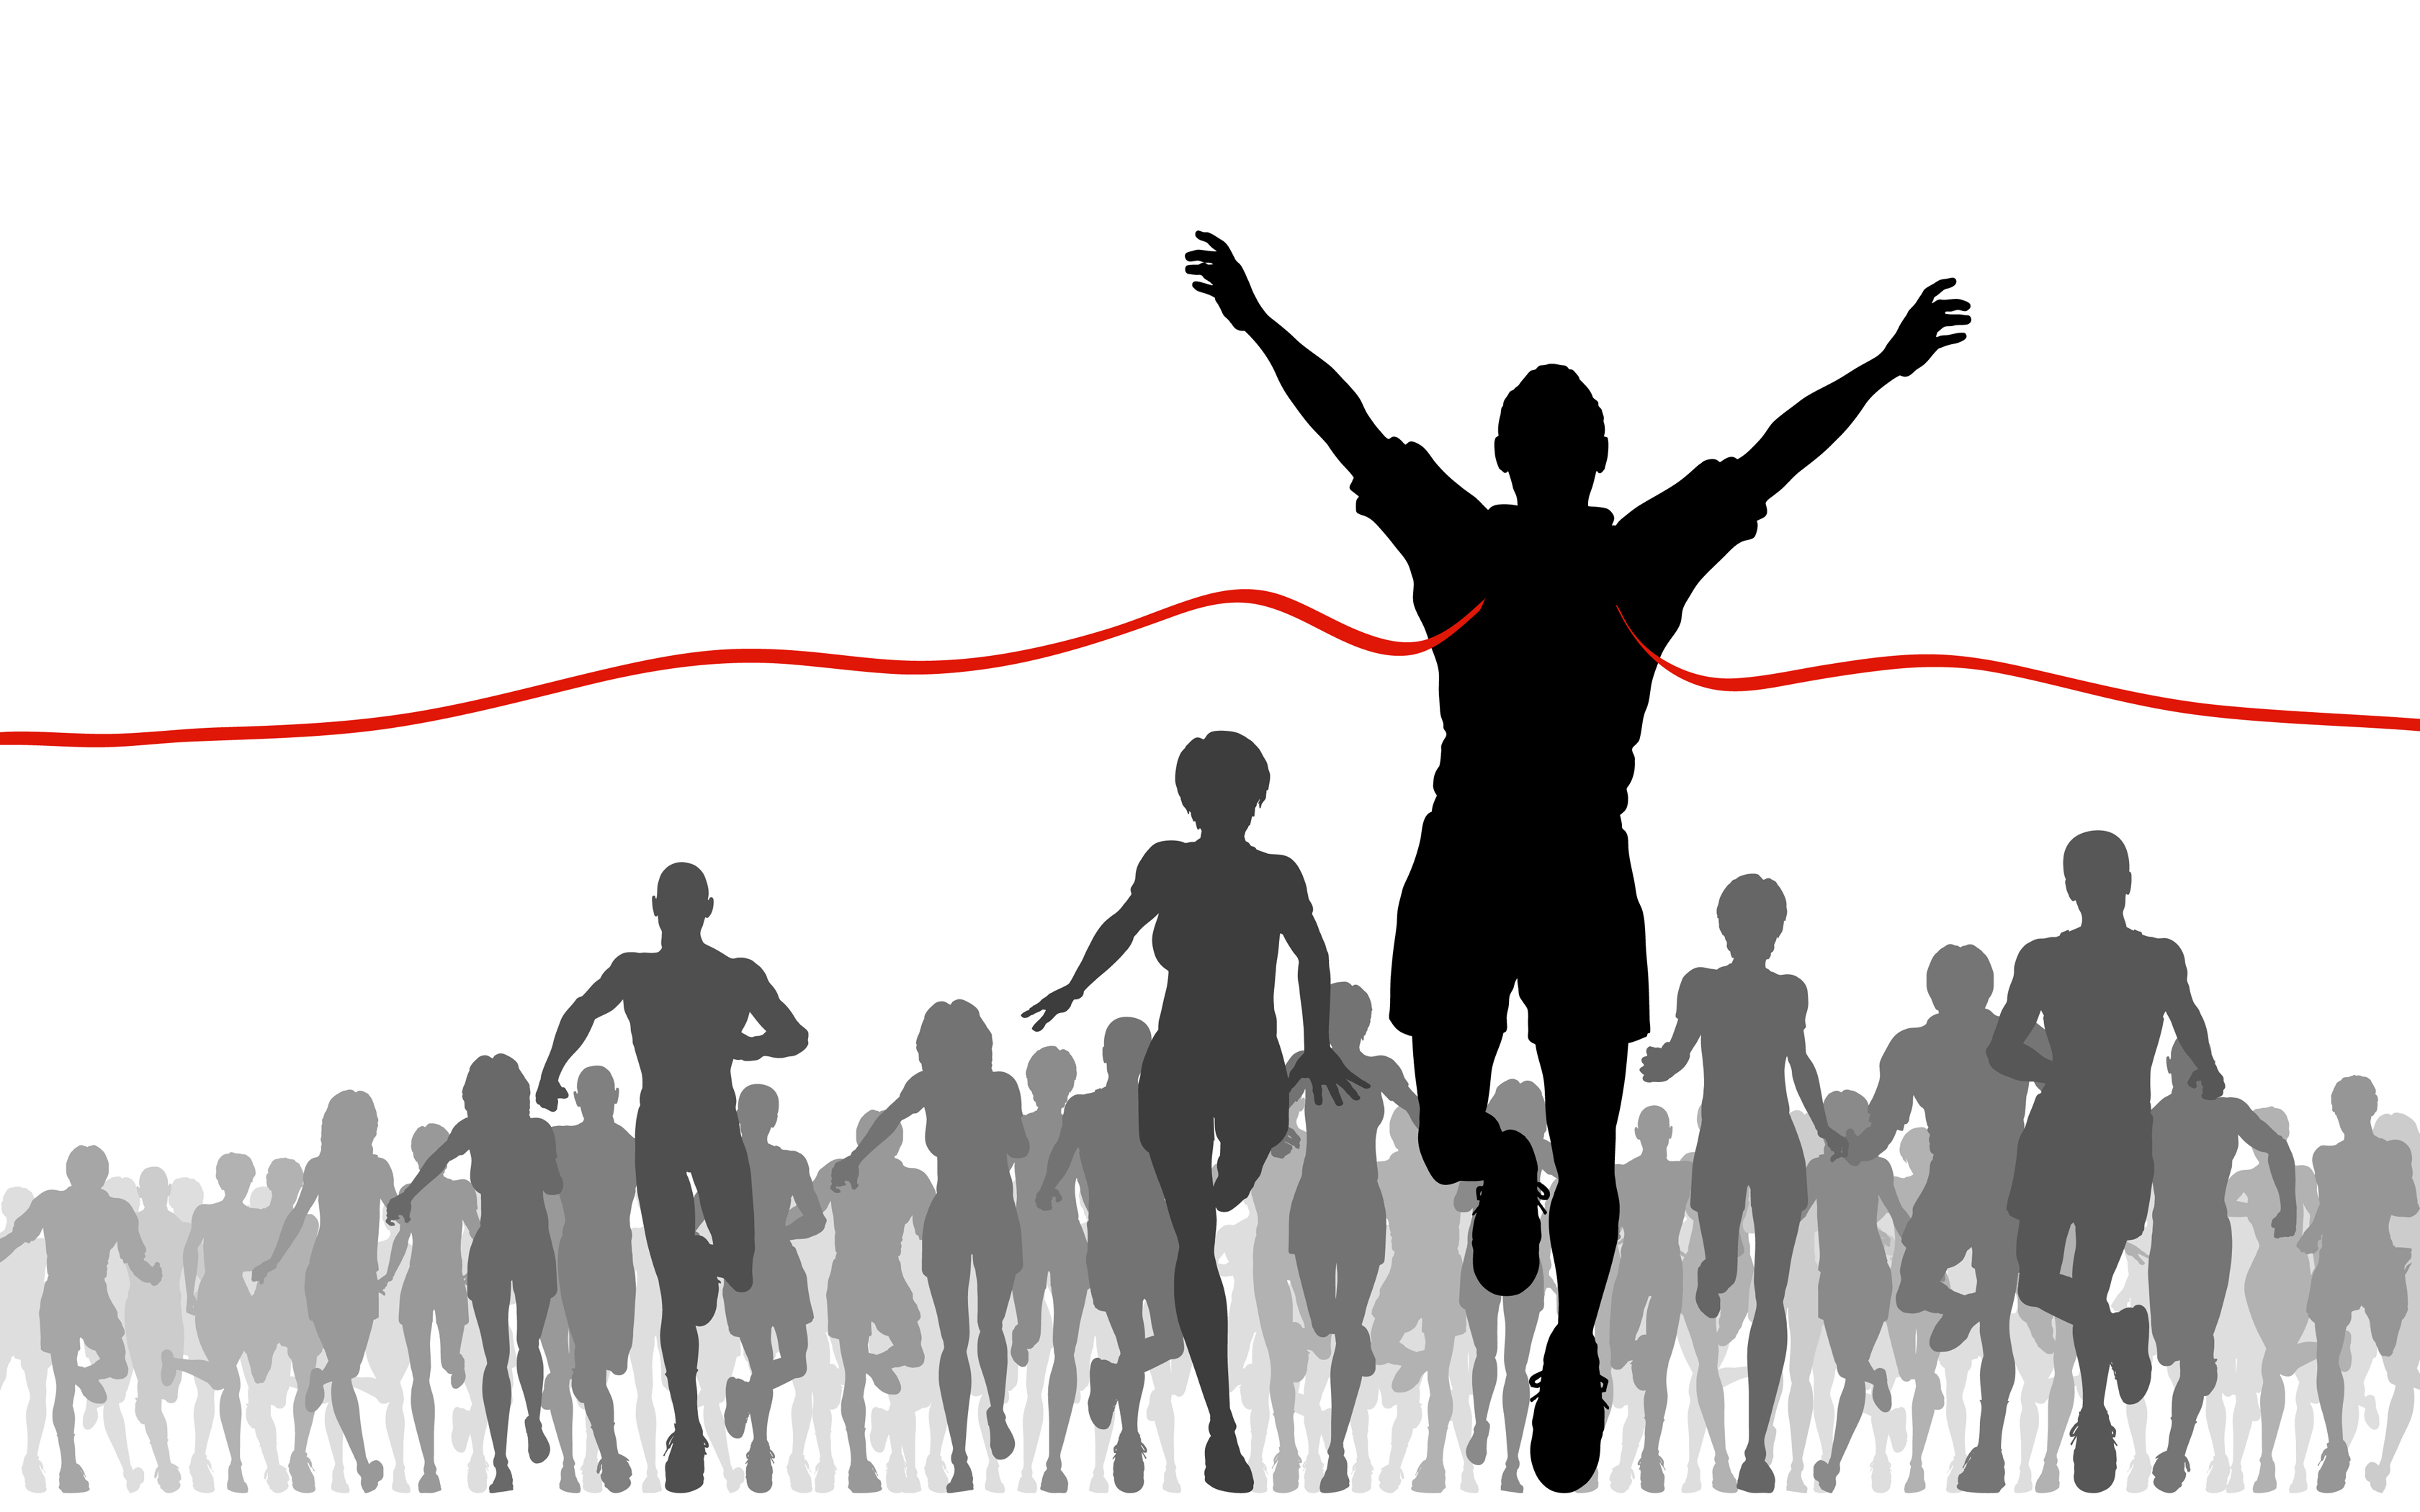 Runner crossing finish line clipart graphic black and white download Free Finish Line Cliparts, Download Free Clip Art, Free Clip Art on ... graphic black and white download